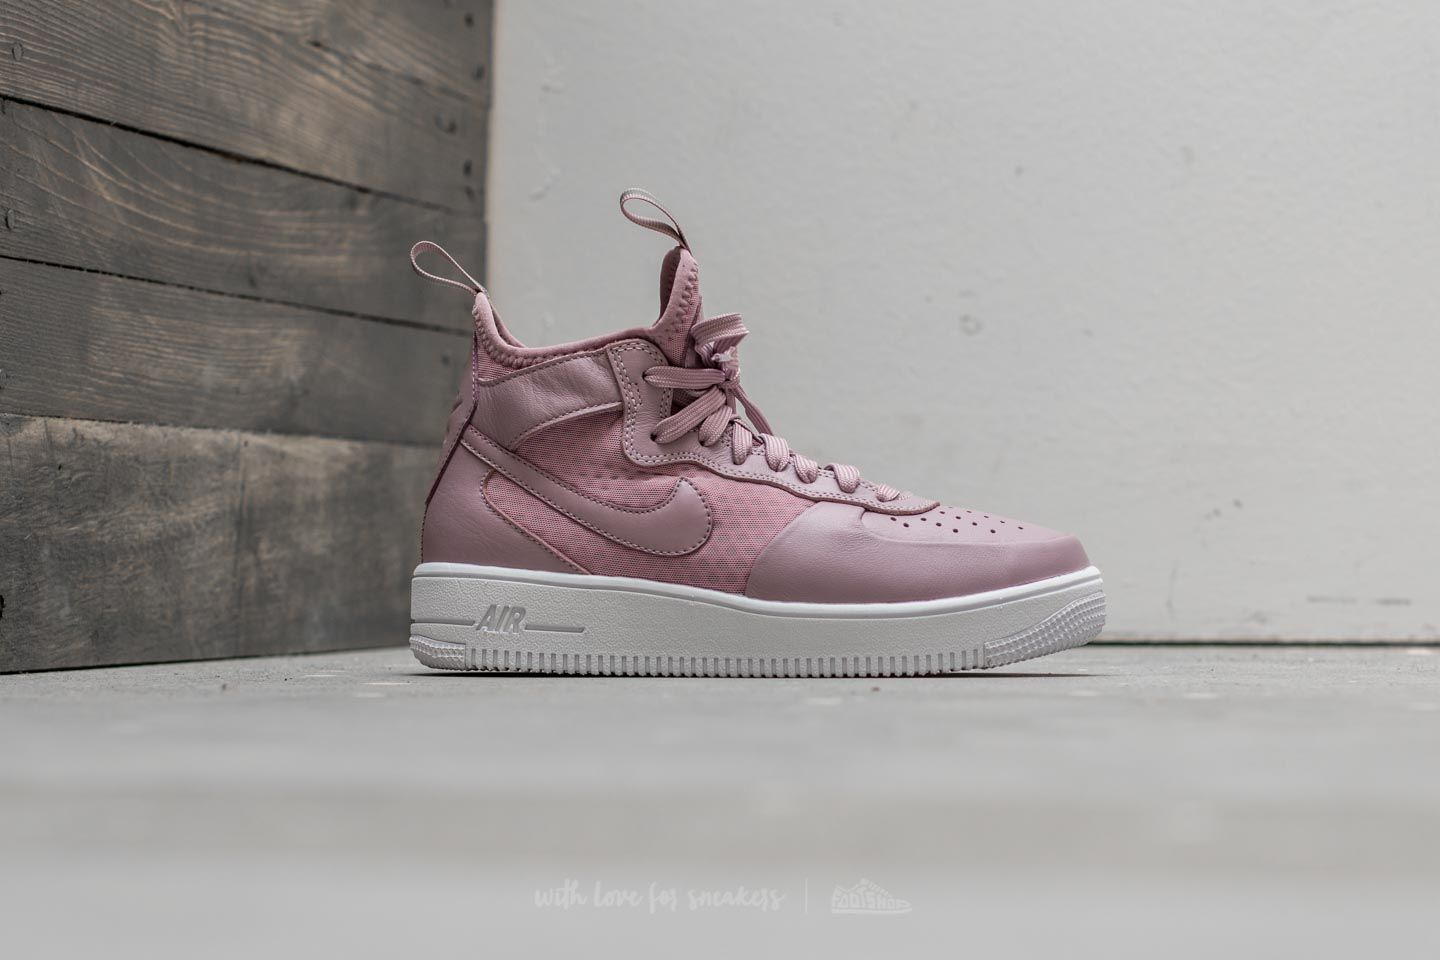 Nike W Air Force 1 Ultraforce Mid Plum Fog Plum Fog Black White | Footshop